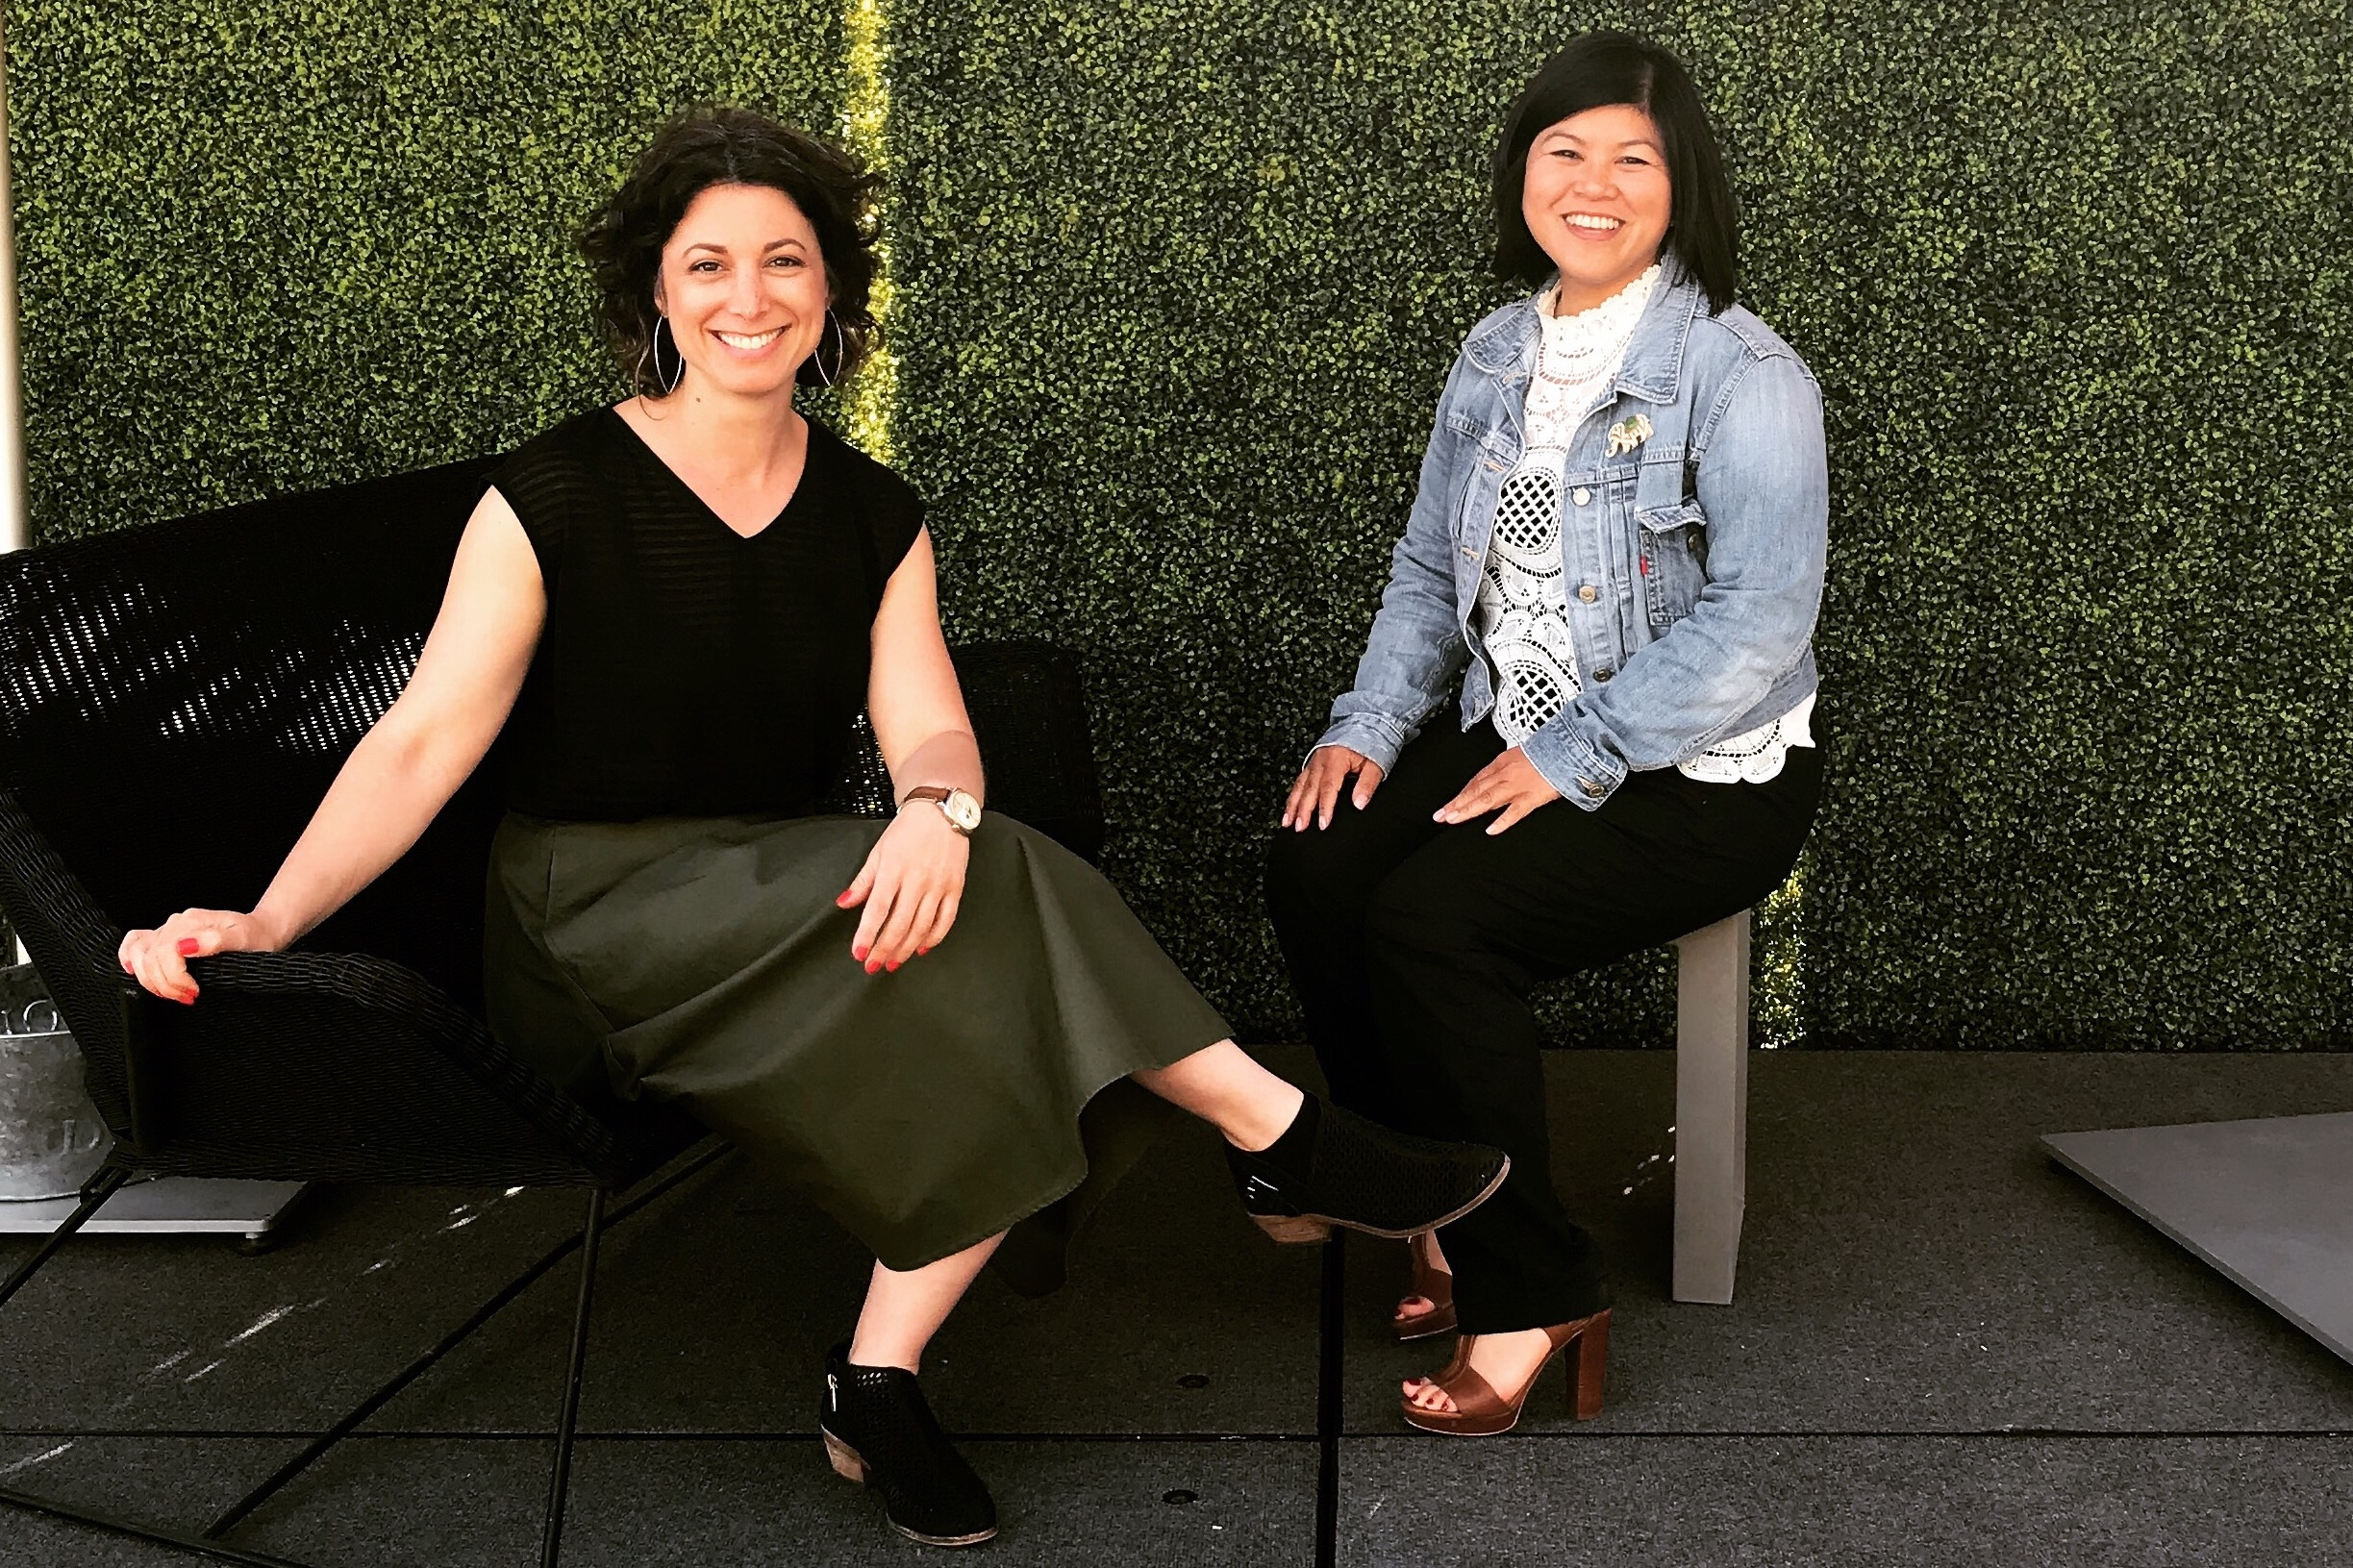 - Hi! We are Melissa Center & Tanny Jiraprapasuke, co-founders of Whole Self Systems. We are passionate about training emerging leaders, innovators, and your teams how to communicate with authenticity & profound human impact.